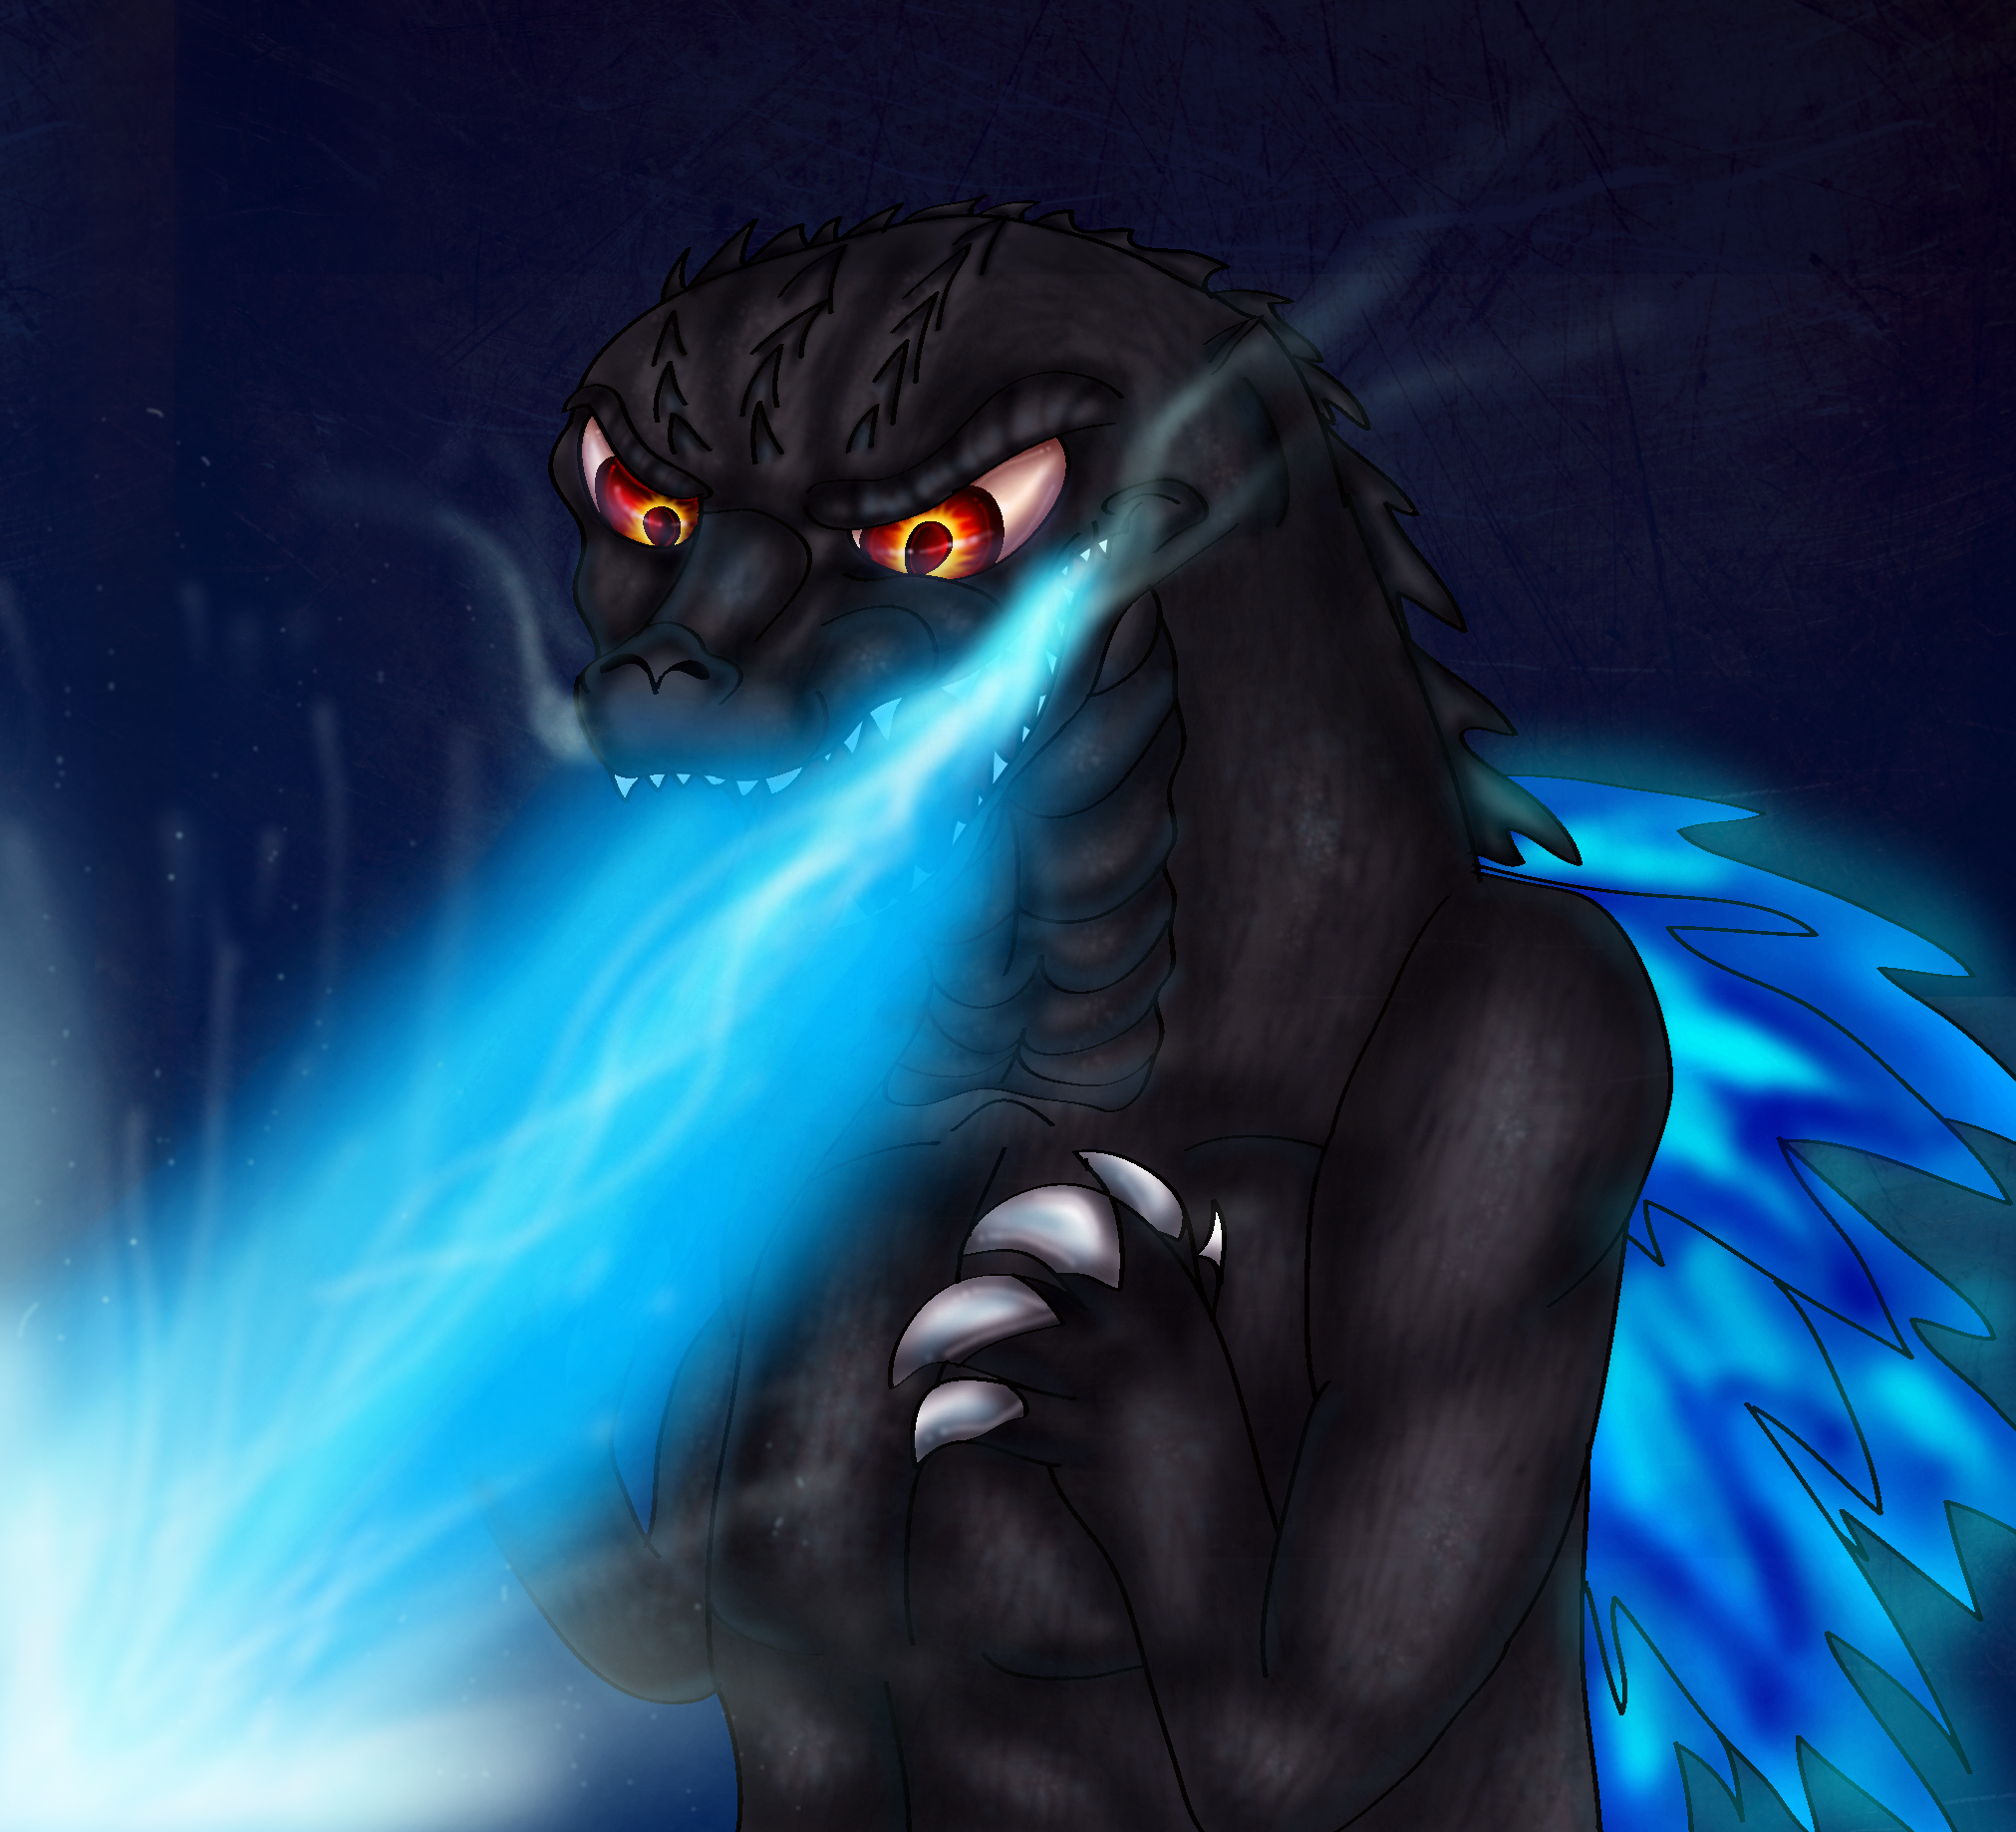 Godzilla's Atomic Breath by PlagueDogs123 on DeviantArt